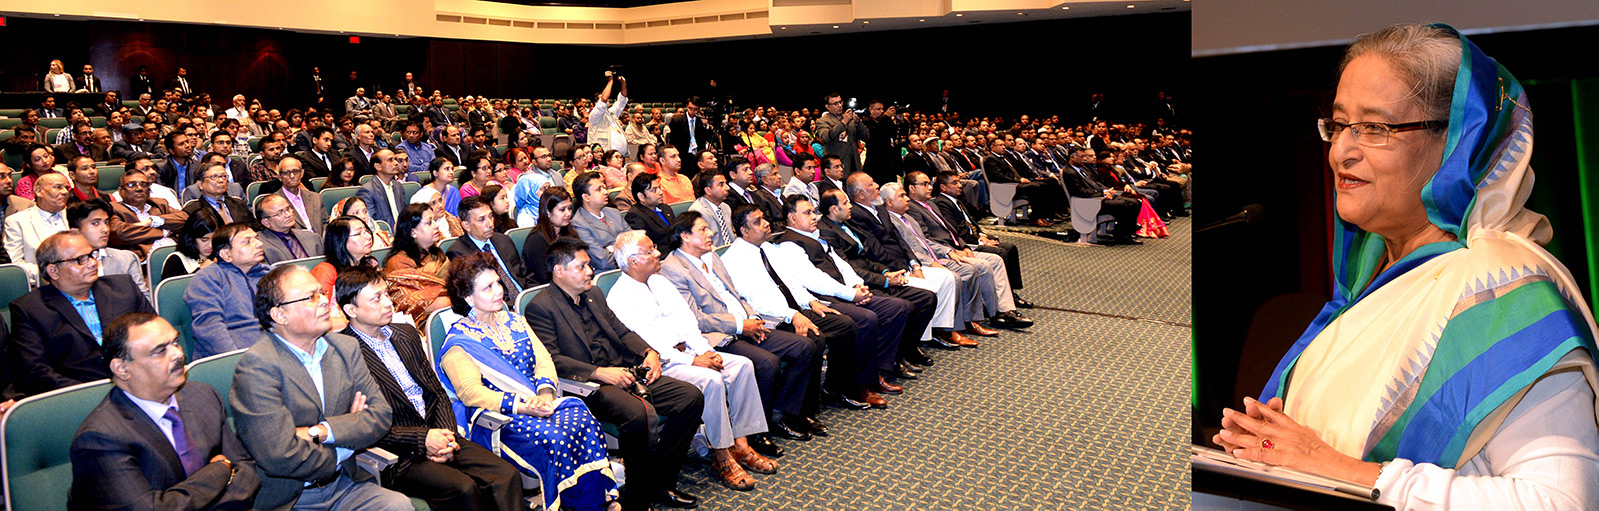 Honourable Prime Minister Sheikh Hasina addresses leaders of Bangladesh Awami League in Montreal during her visit to Canada on 15-18 September 2016.